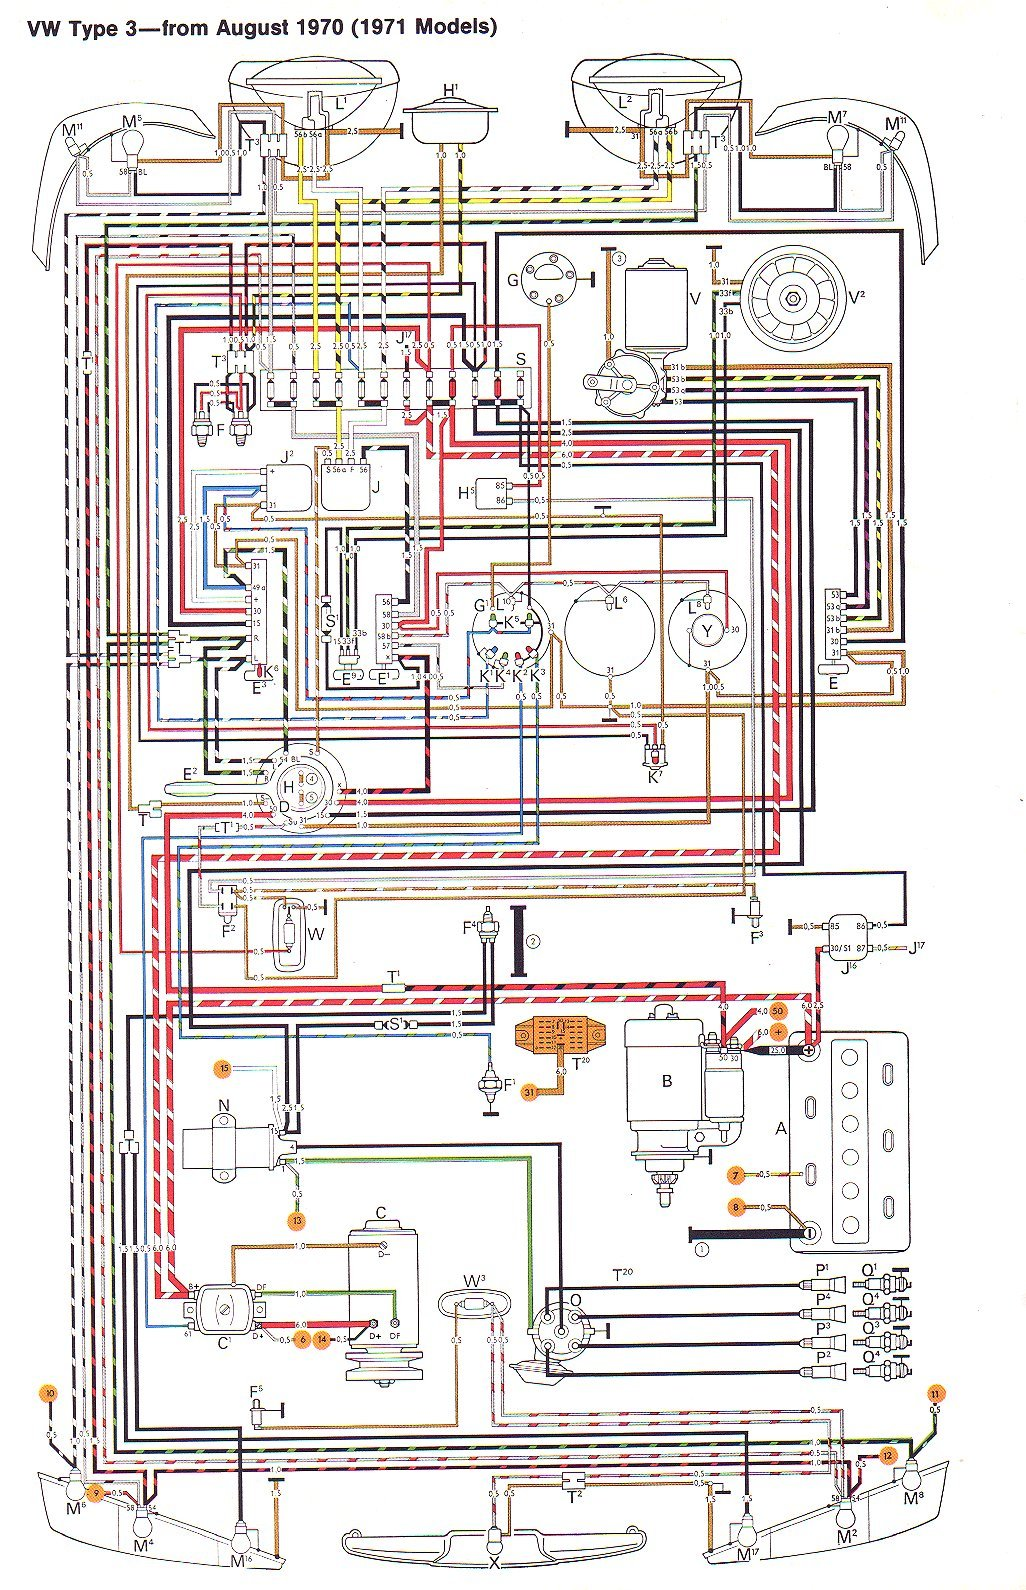 Type 3 Wiring Diagram Essig Generator Vw Diagrams 1937 Ford